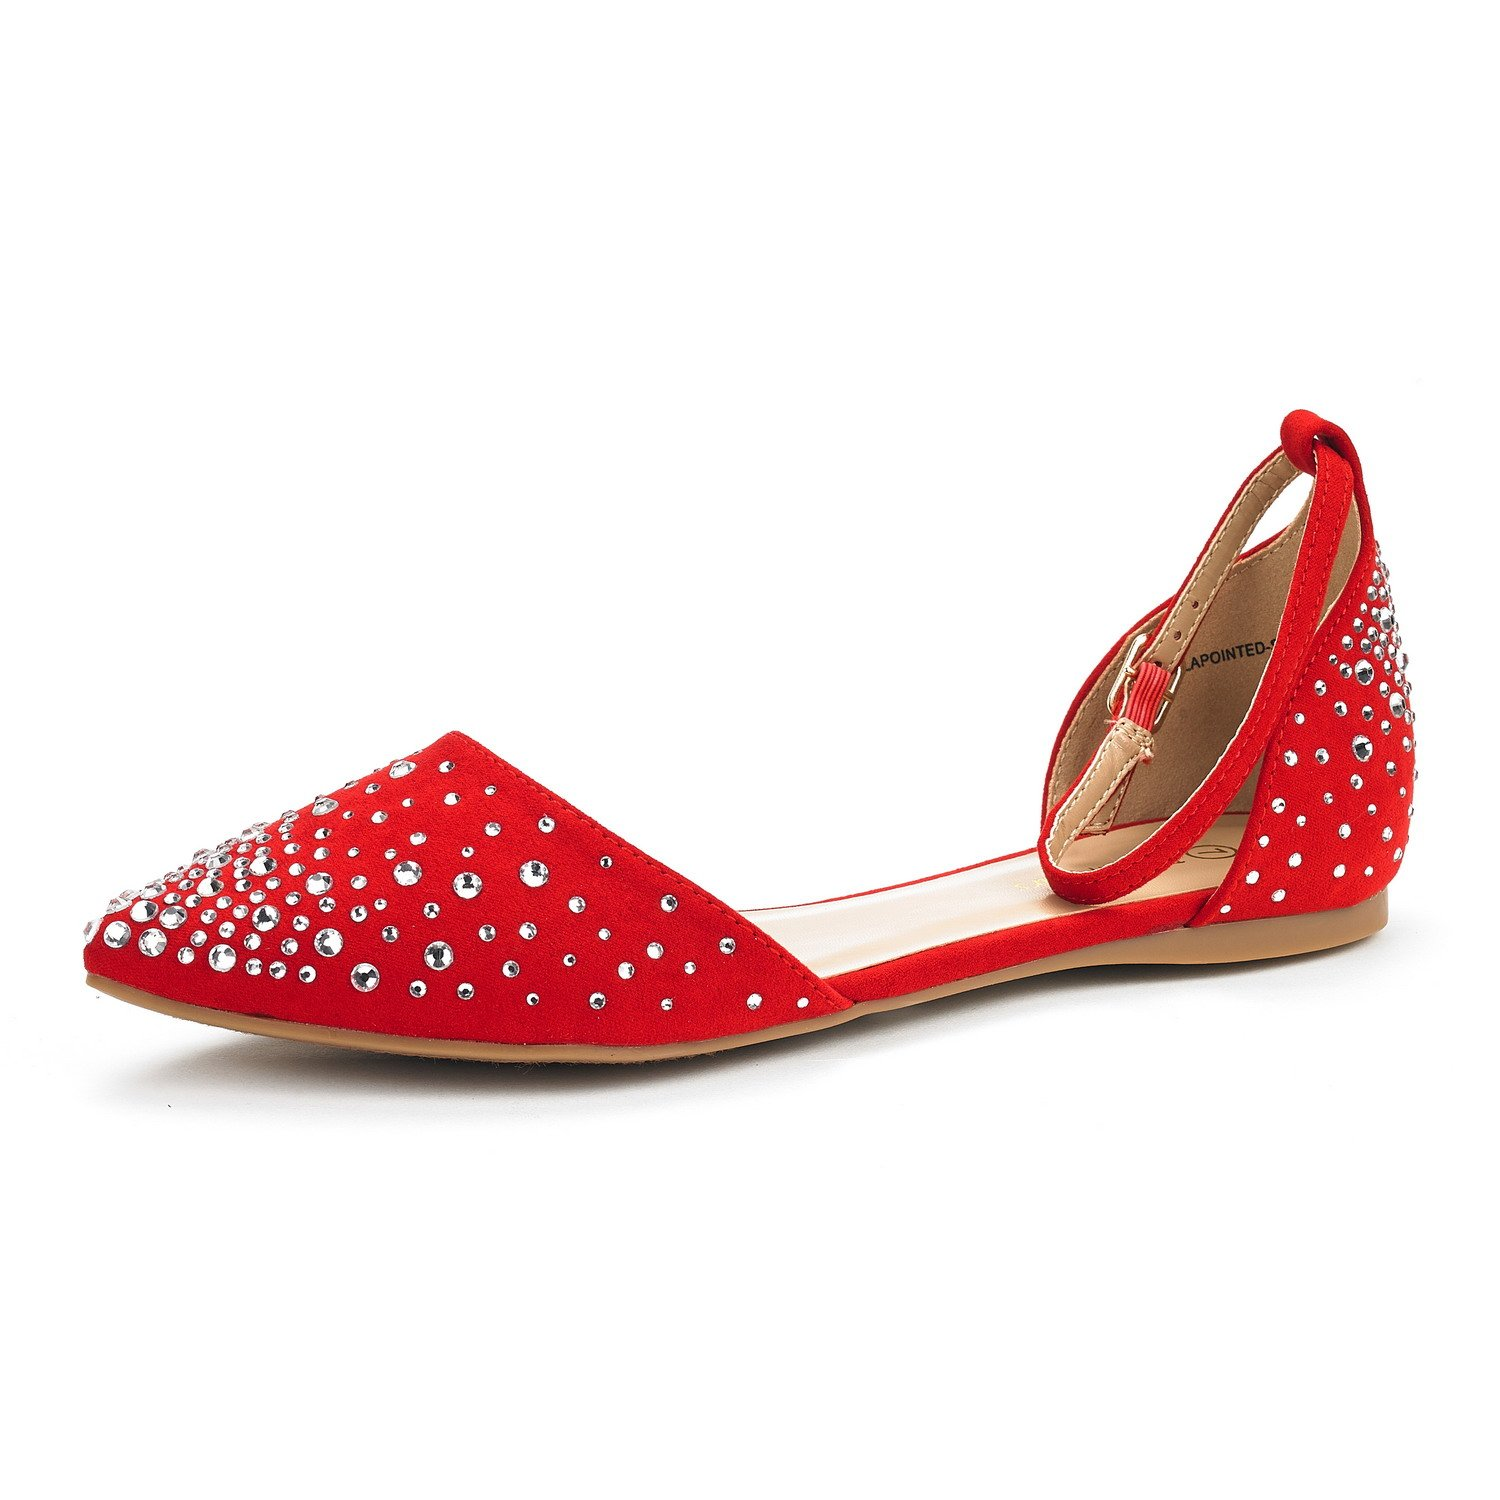 DREAM PAIRS Flapointed-Shine New Women's Casual D'Orsay Rhinestones Pointed Toe Comfort Soft Ballet Flats Shoes RED Size 7